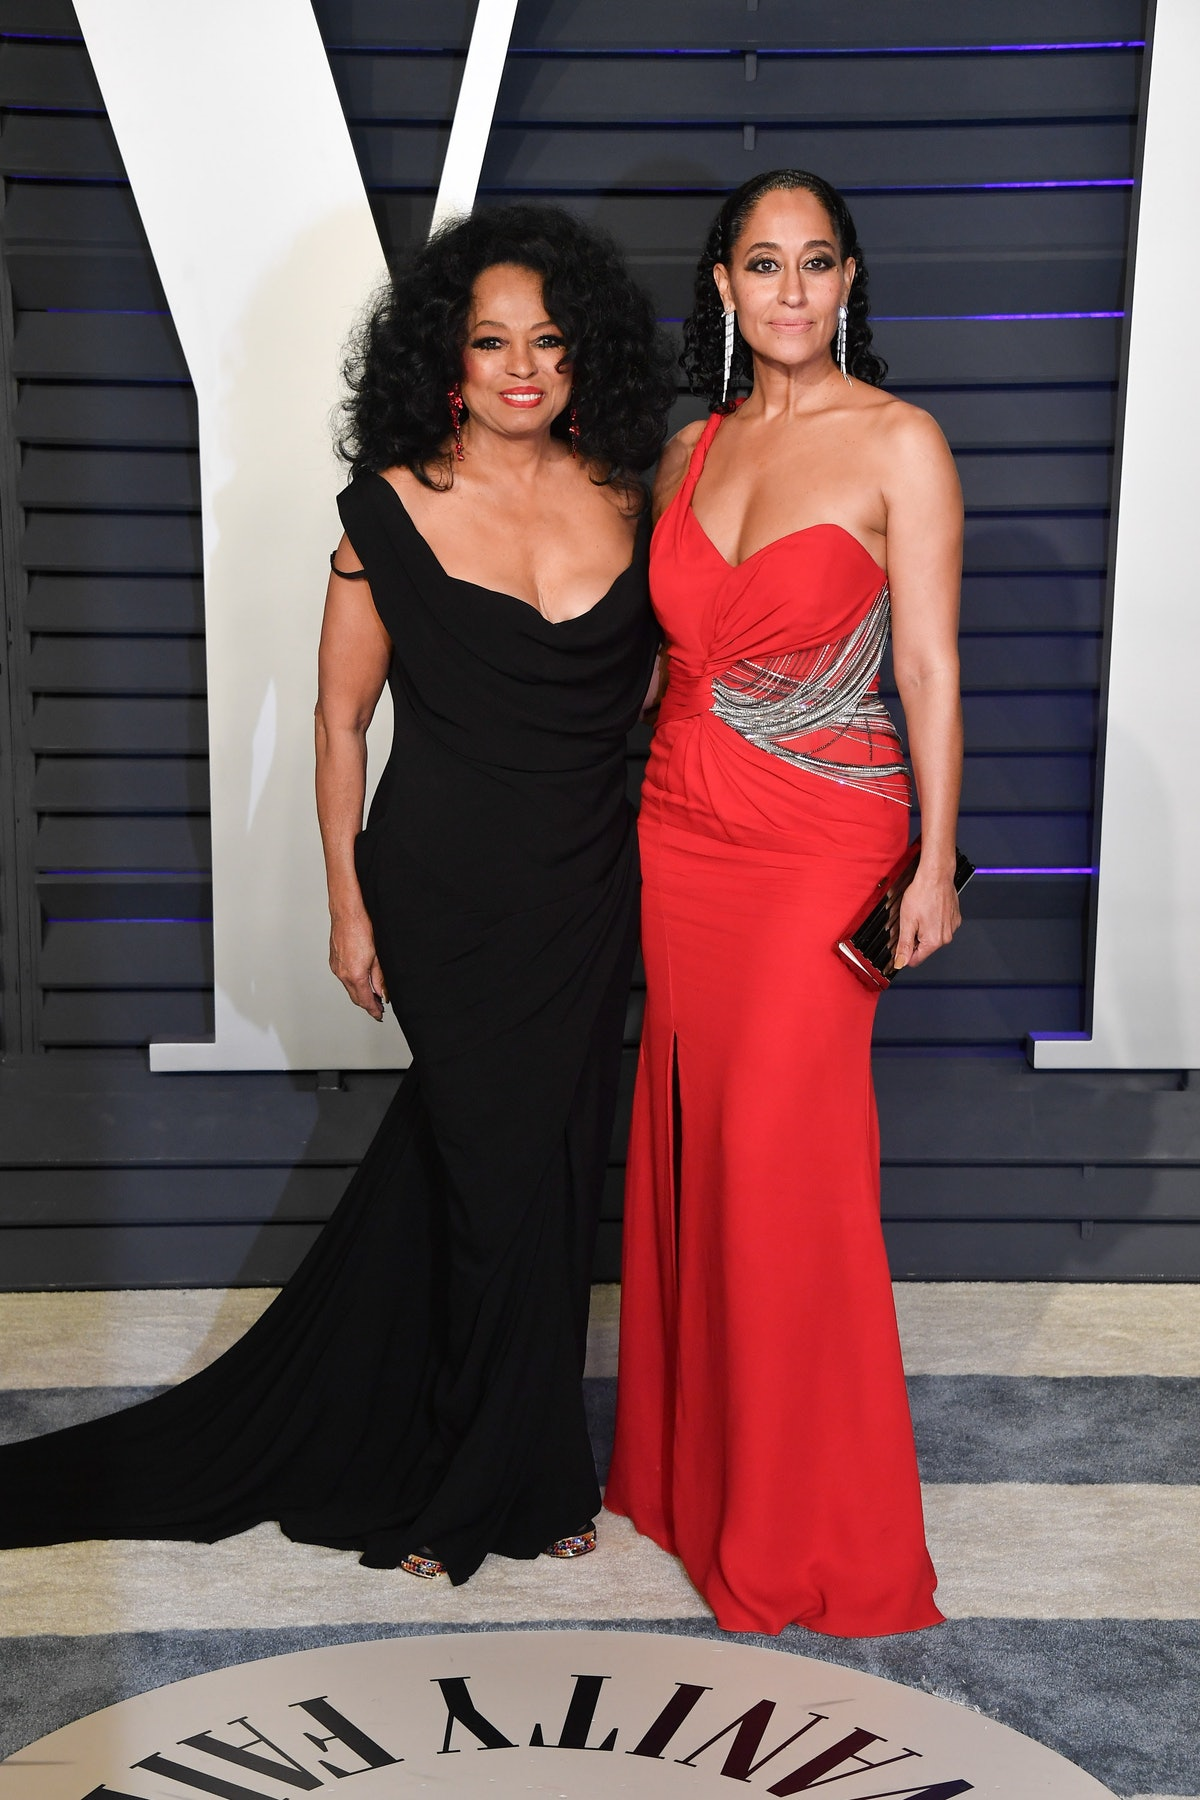 Diana Ross and Tracee Ellis Ross attend the 2019 Vanity Fair Oscar Party hosted by Radhika Jones at ...